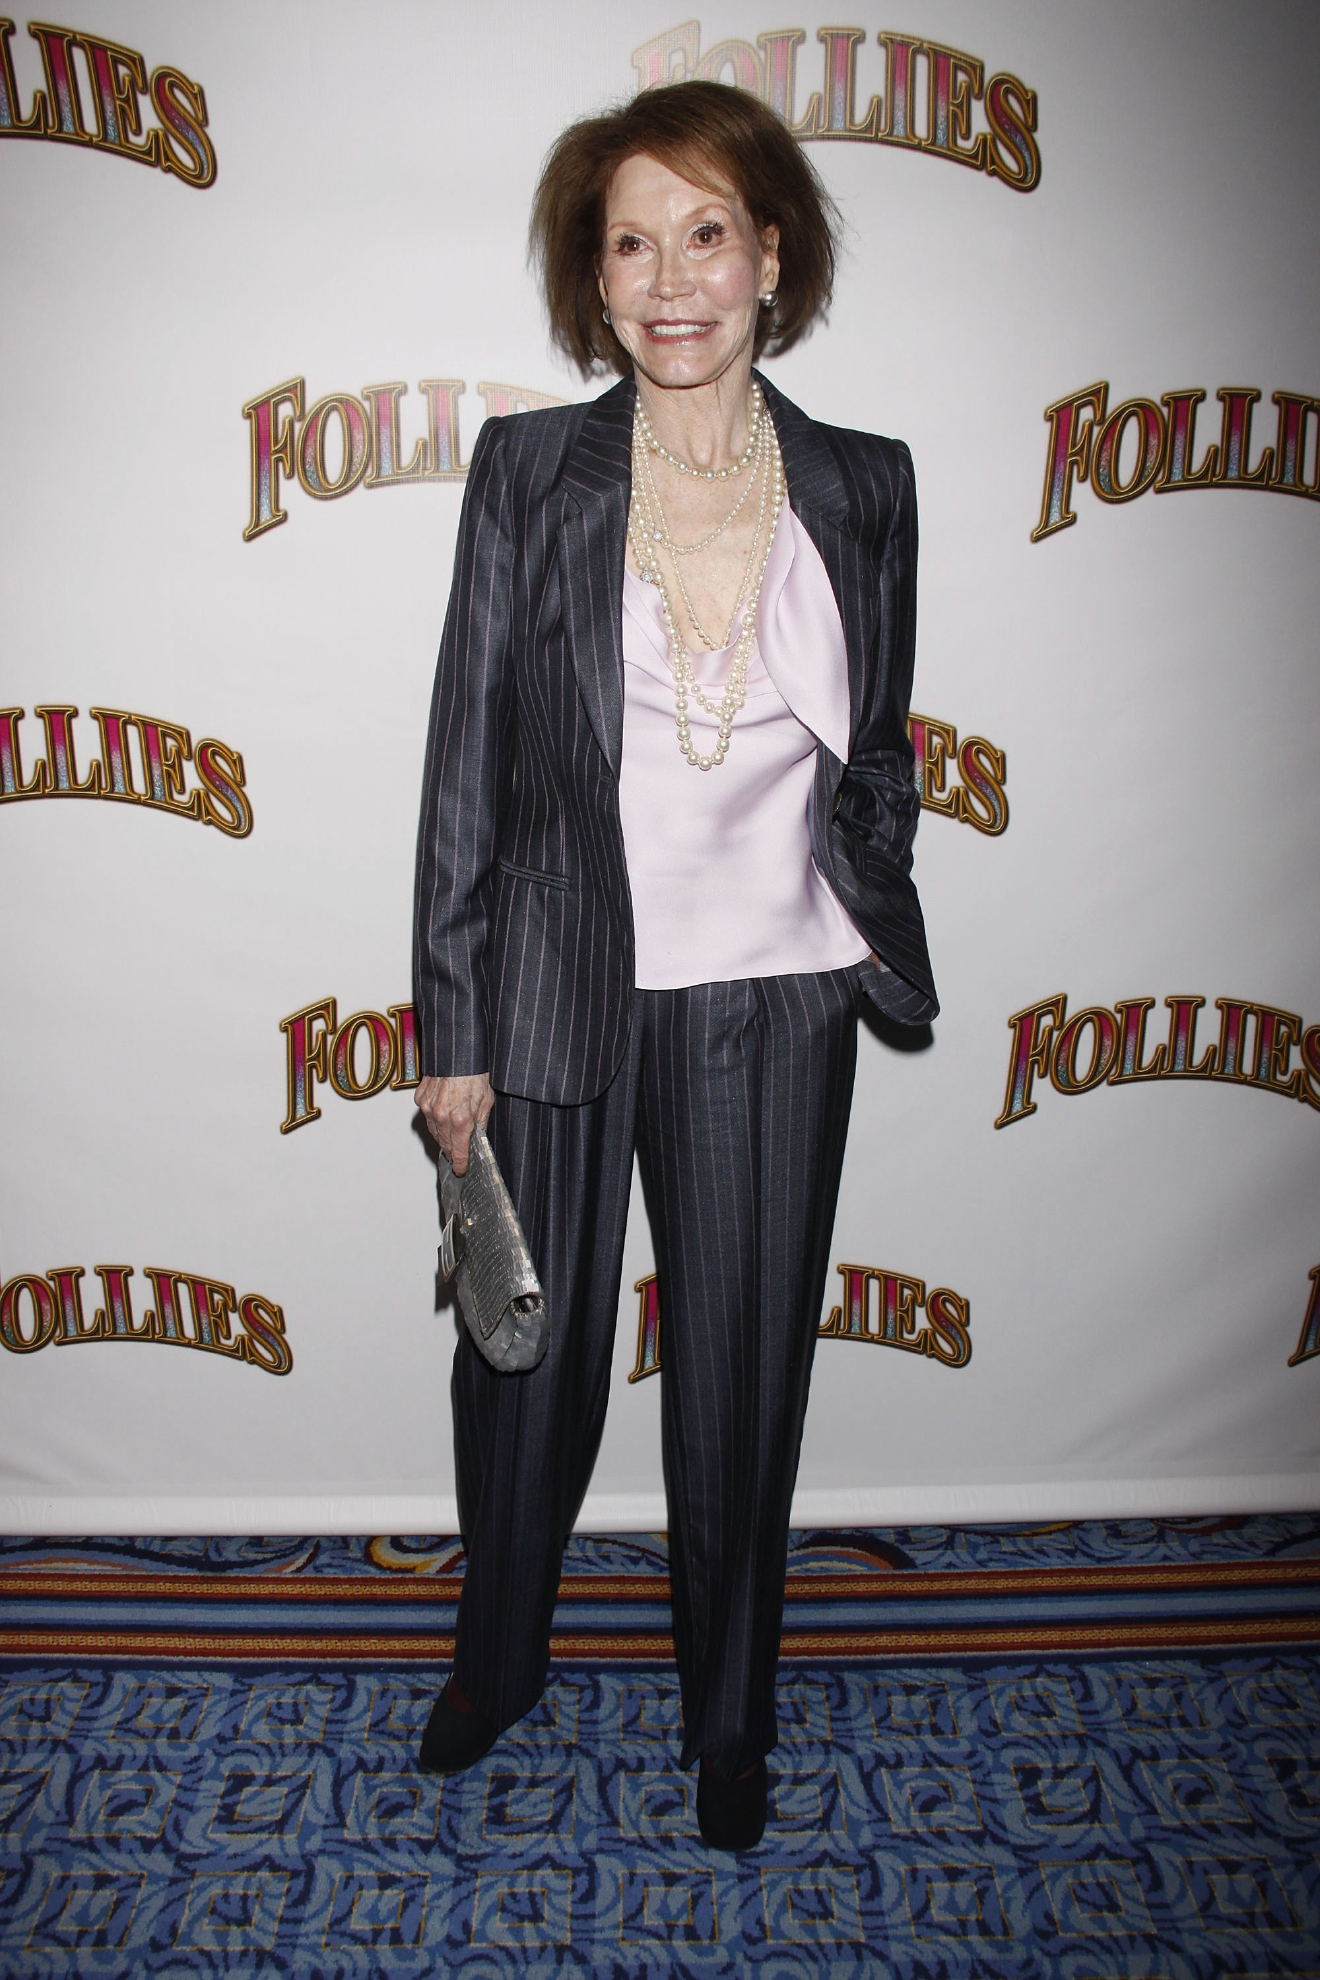 Actress Mary Tyler Moore put on a brave face to attend the opening night of pal Bernadette Peters' stint in Follies on Monday (12Sep11) while battling a mystery health issue. The beloved TV and movie veteran was clearly struggling - half her face appeared to be swollen. The star's publicist is still trying to determine why Moore appeared so ill on the Broadway red carpet, but she has been battling health issues for some time. She has battled diabetes since the late 1960s and and alcoholism. Earlier this year (11) she underwent elective brain surgery to remove a benign tumour. But she appeared to be in great spirits and fine form in July (11), when she attended the Summer at Broadway Barks charity event. Just last week (ends09Sep11), she was named the recipient of the 2011 Screen Actors Guild Life Achievement Award. The actress, who is best known for her portrayal of homemaker Laura Petrie in The Dick Van Dyke Show and as title character Mary Richards in iconic sitcom The Mary Tyler Moore Show, will be the 48th person to pick up the accolade when the Screen Actors Guild Awards take place in January (12).  Mary Tyler Moore Opening night of the Broadway musical production of 'Follies' at the Marquis Theatre - Arrivals  Where: New York City, United States When: 12 Sep 2011 Credit: WENN